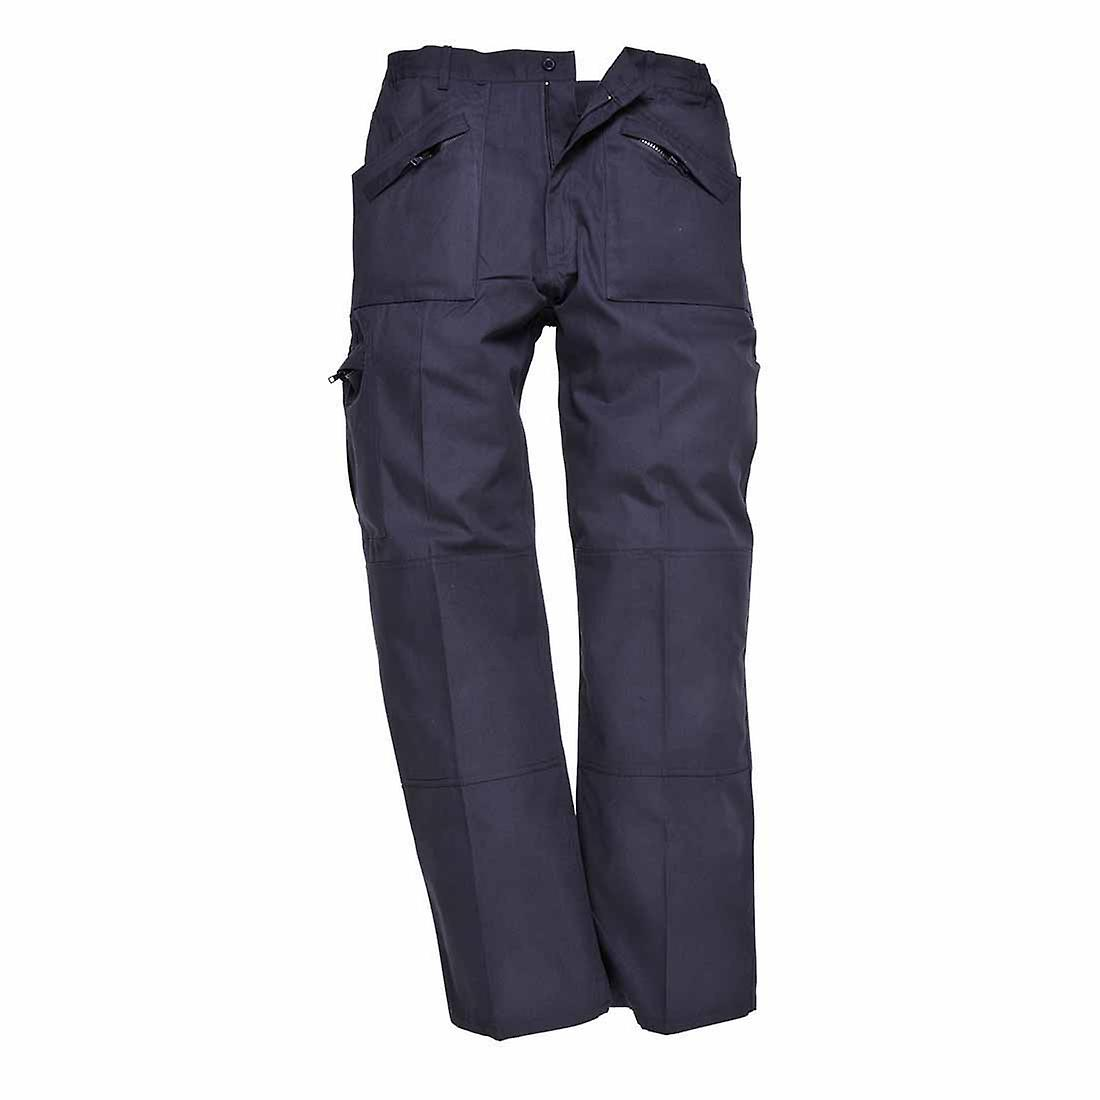 Portwest - Classic Lightweight Workwear Action Cargo Trousers - Texpel Finish